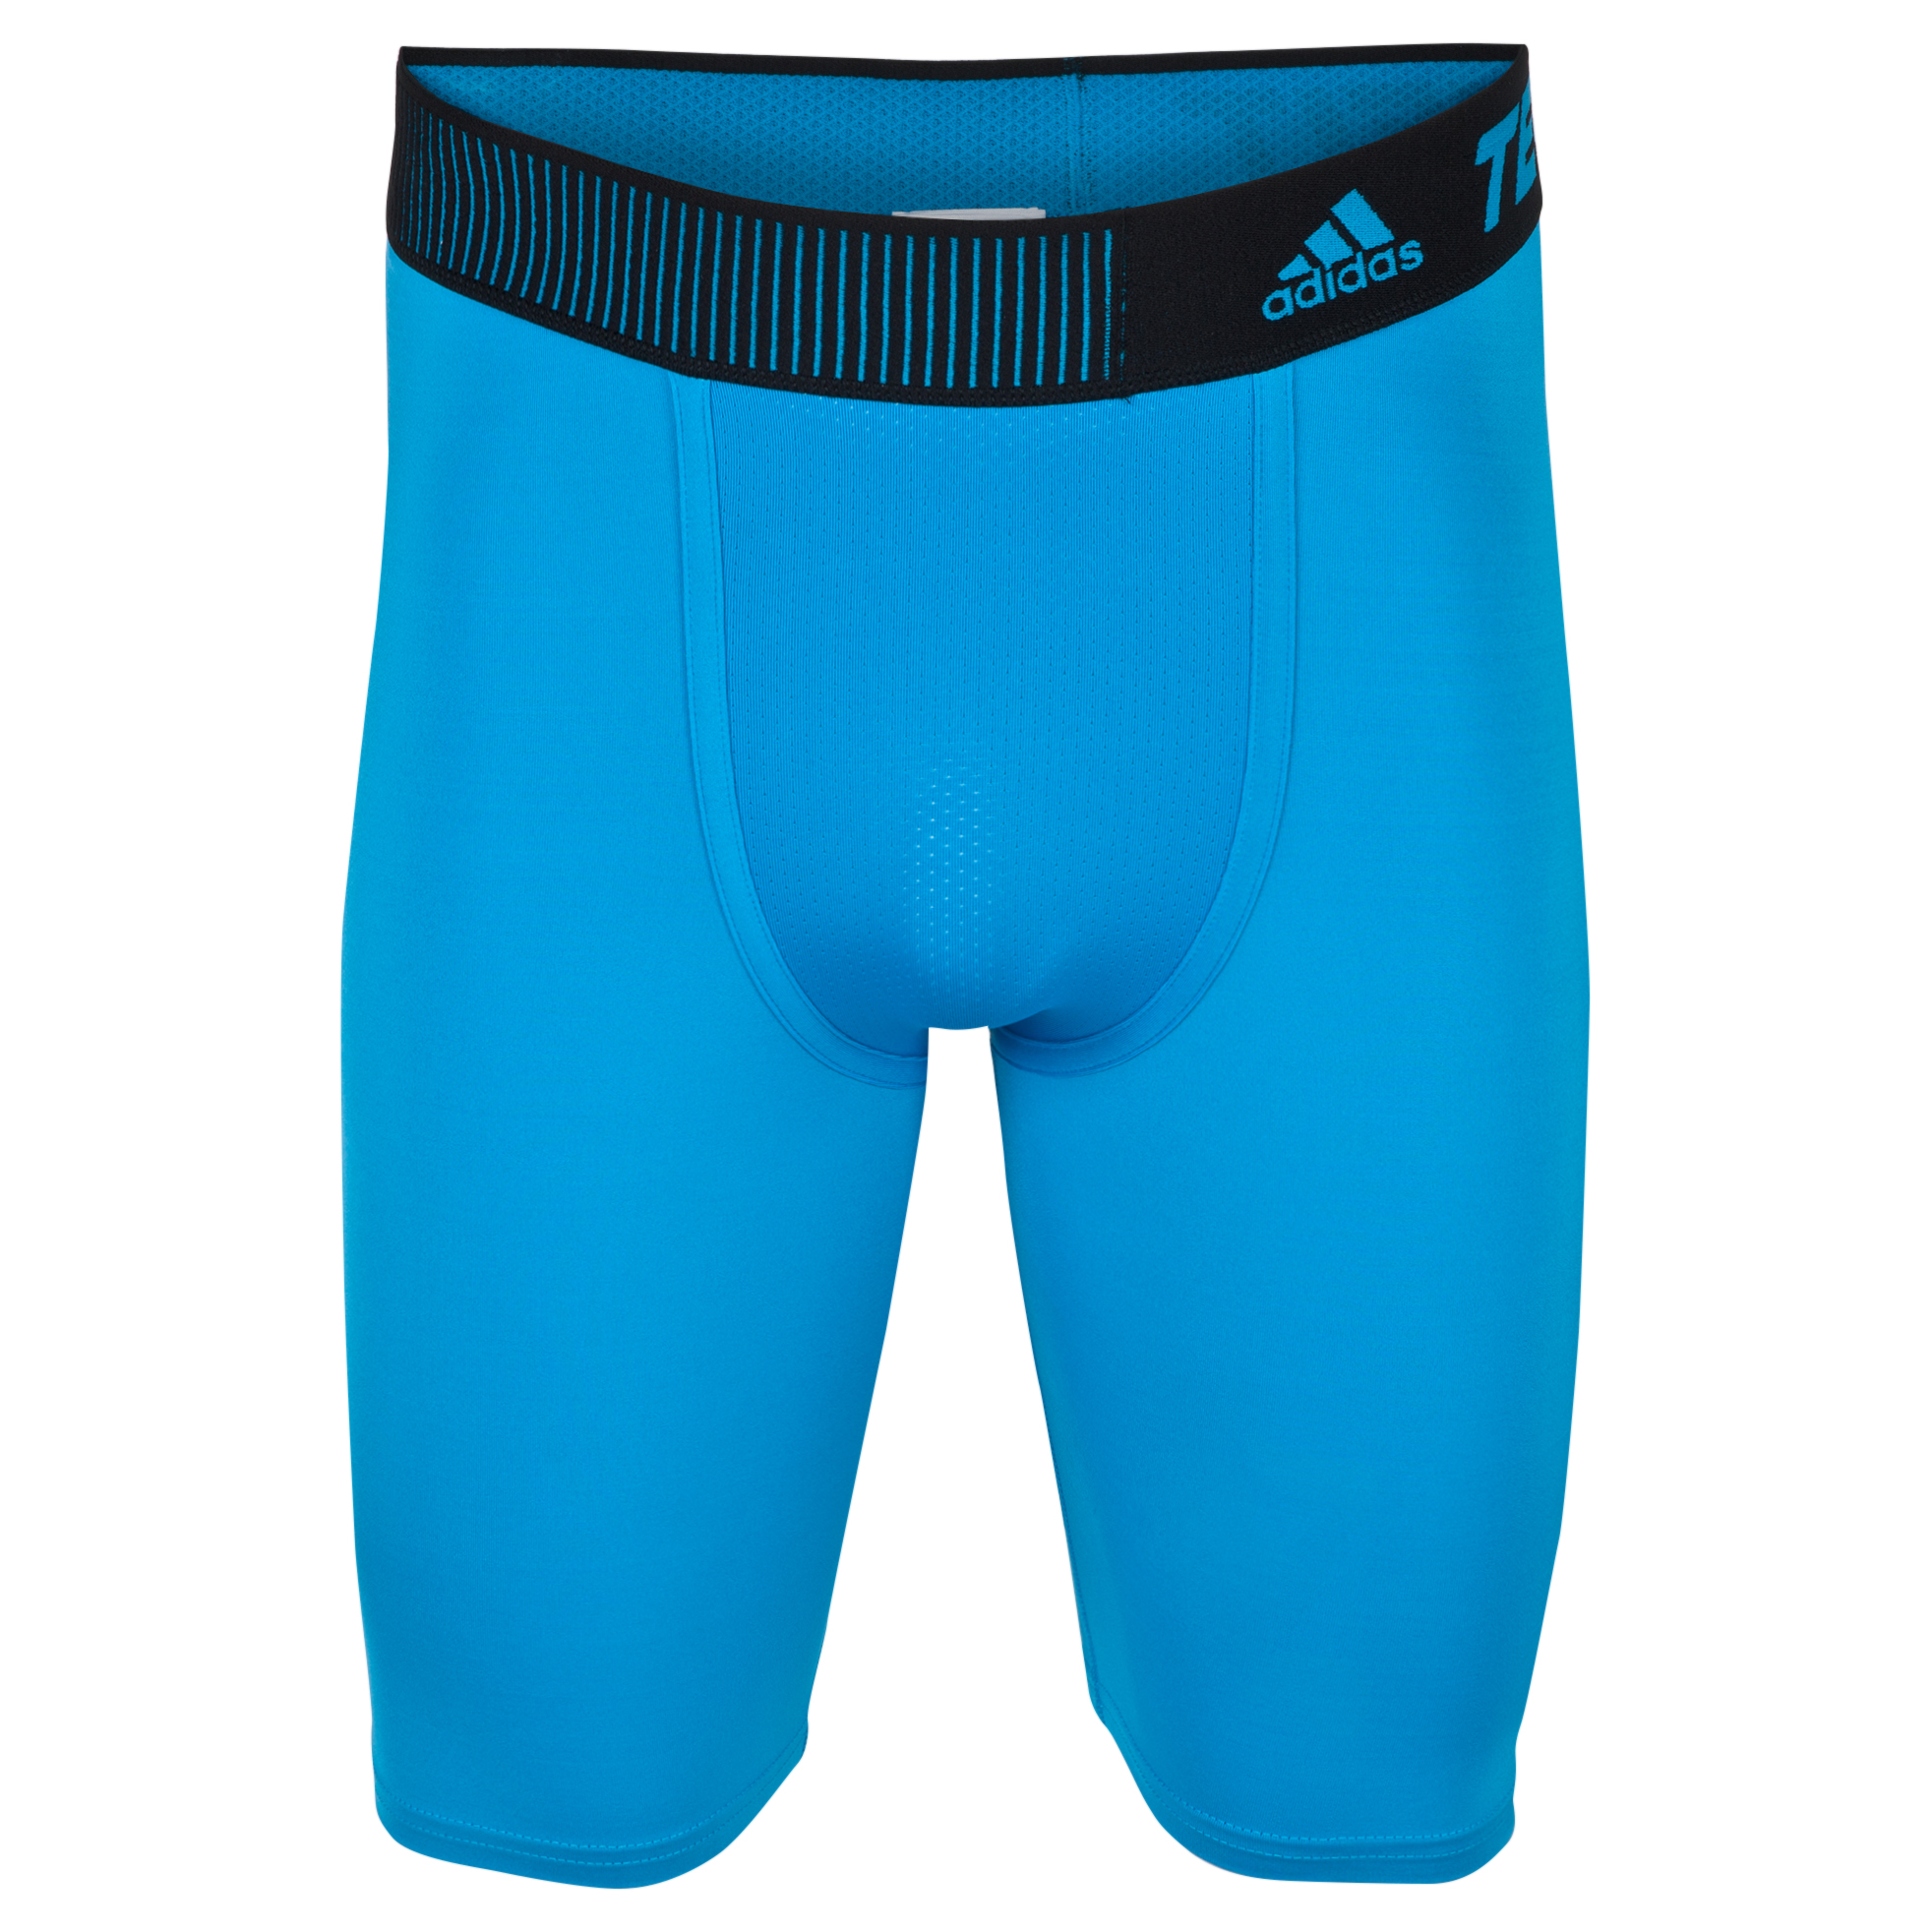 Adidas TechFit Cool Base Layer Shorts Blue